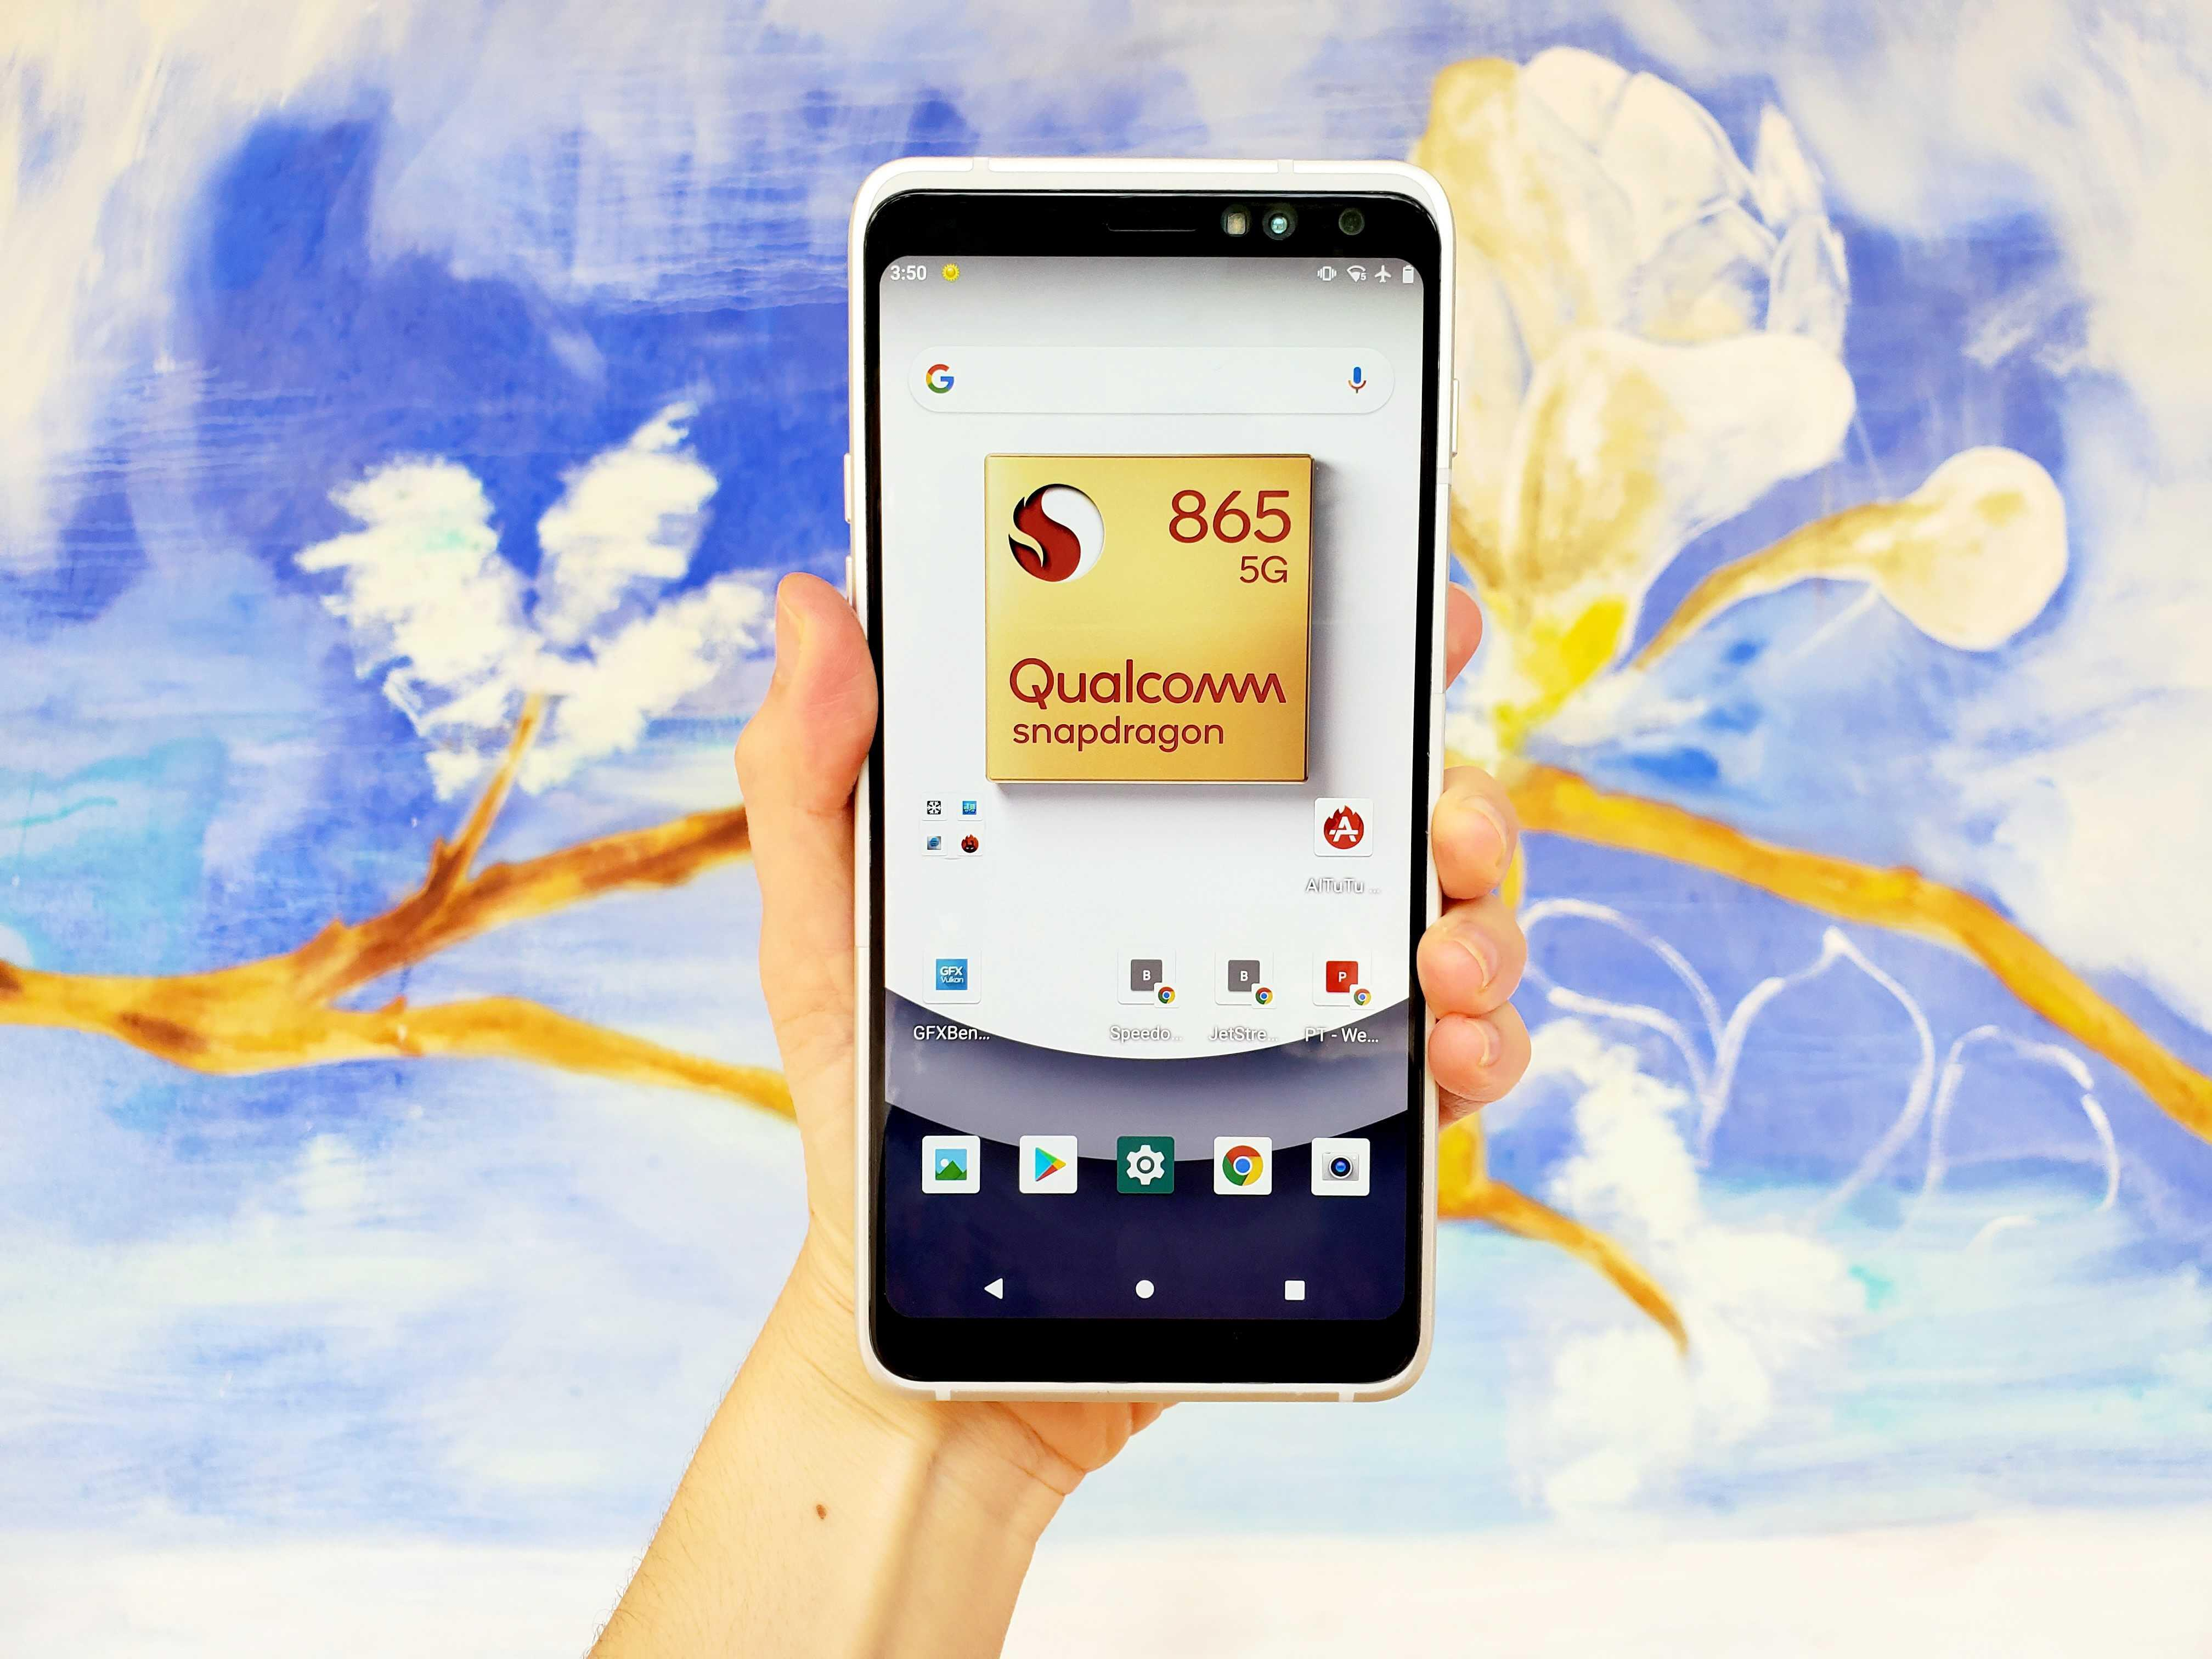 snapdragon-865-reference-device-front